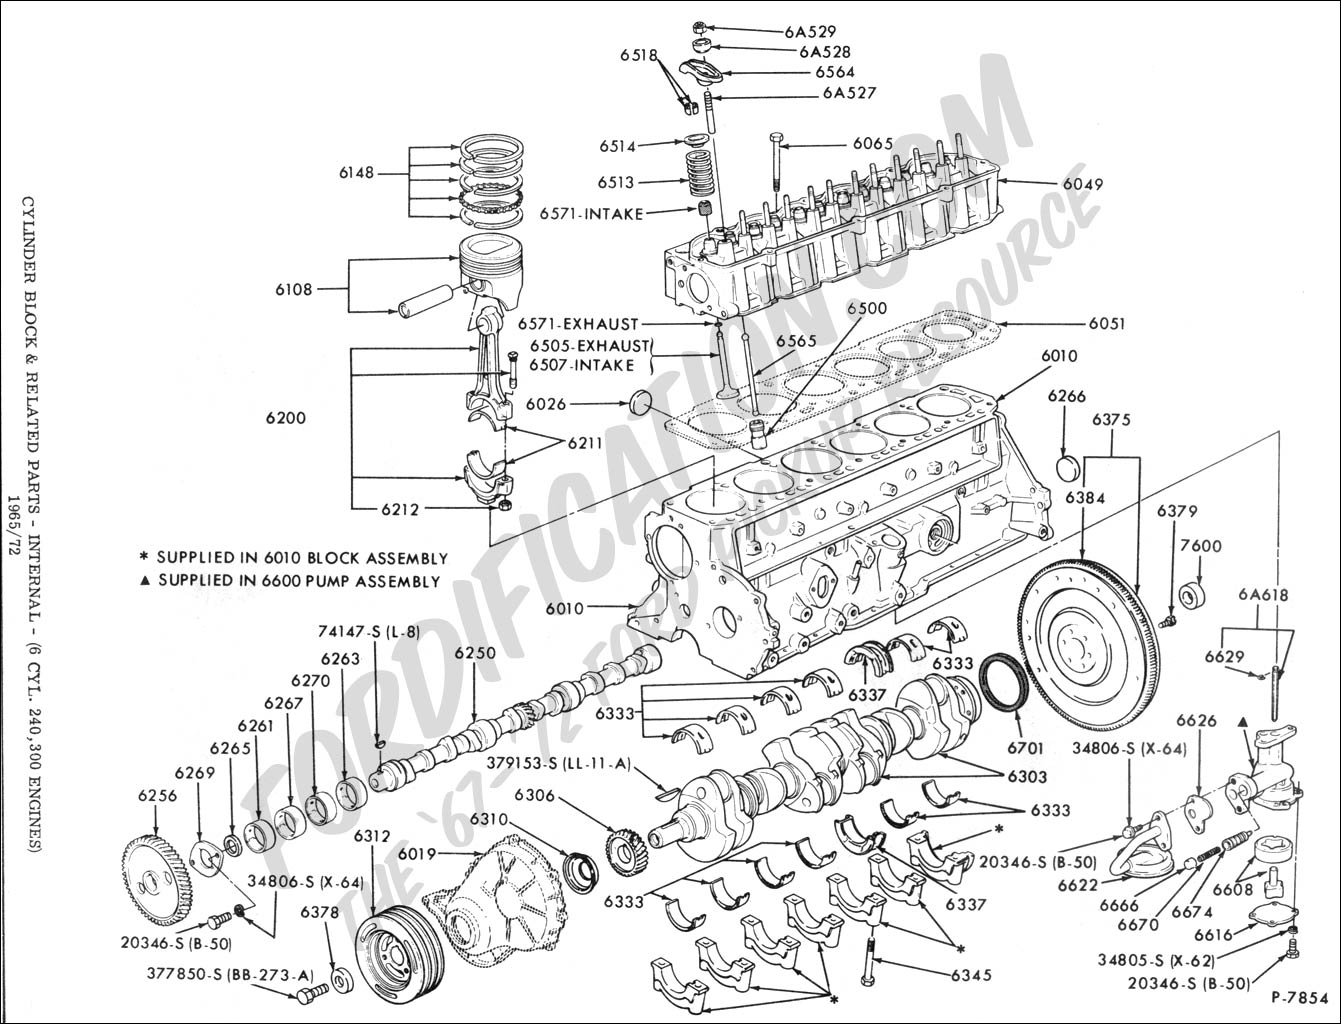 ford truck technical drawings and schematics - section e ... 1969 ford mustang engine diagram blueprints ford mustang engine diagram